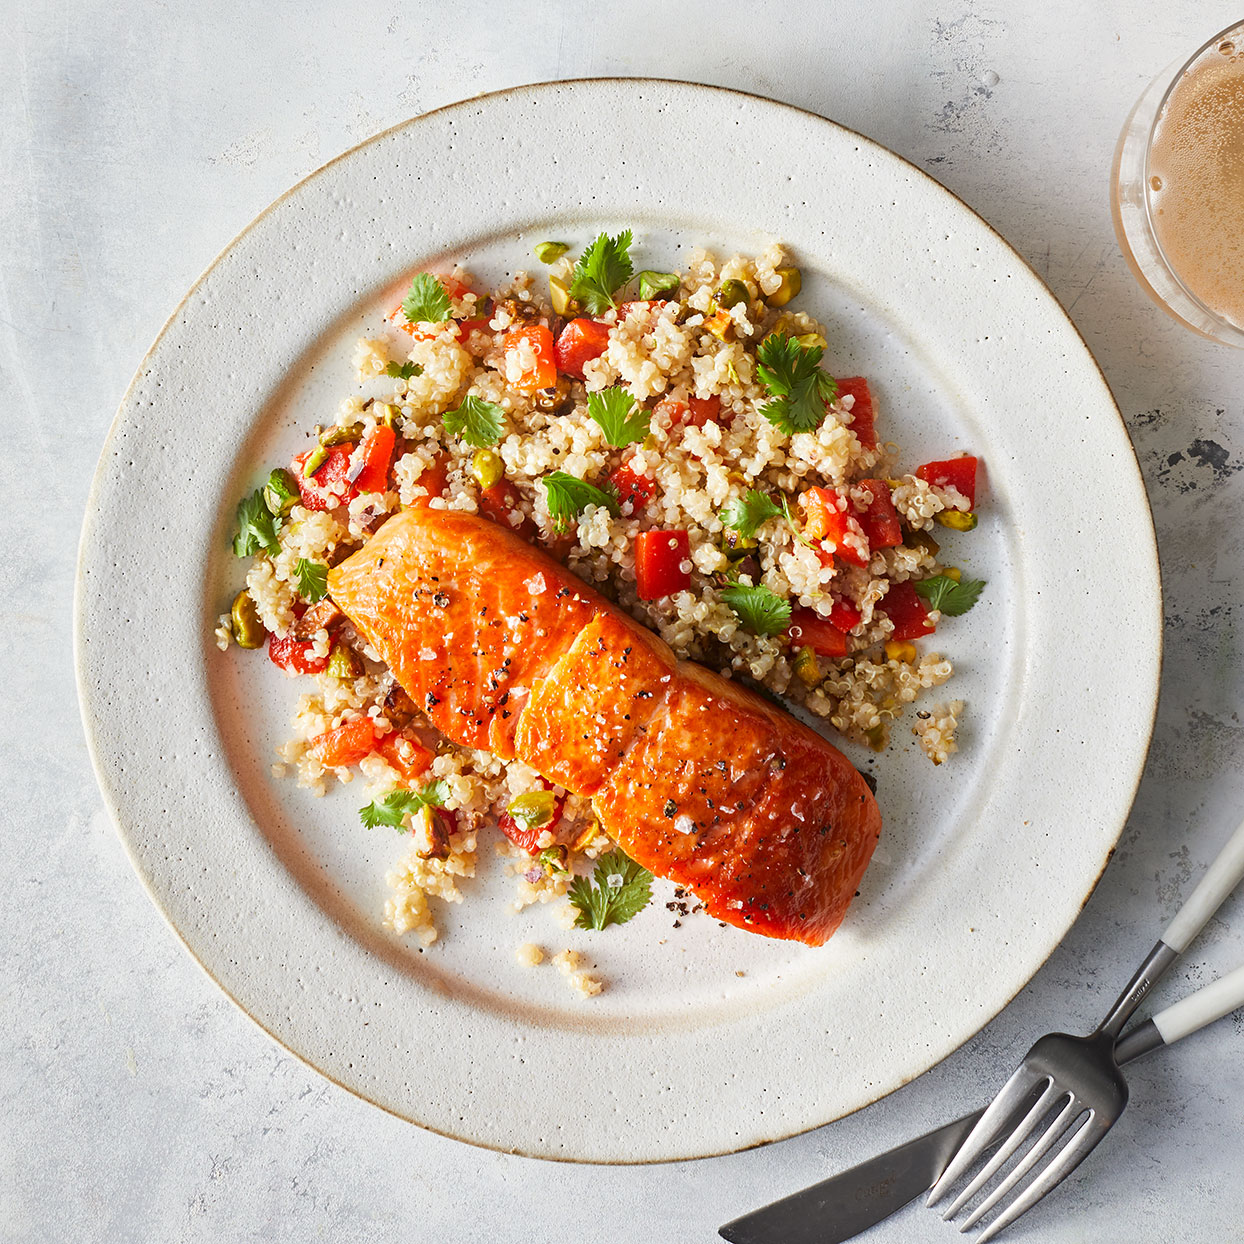 This zesty quinoa salad is delicious all on its own, with some serious Mediterranean flair. Make a double batch for lunches later in the week. Source: EatingWell Magazine, January/February 2020